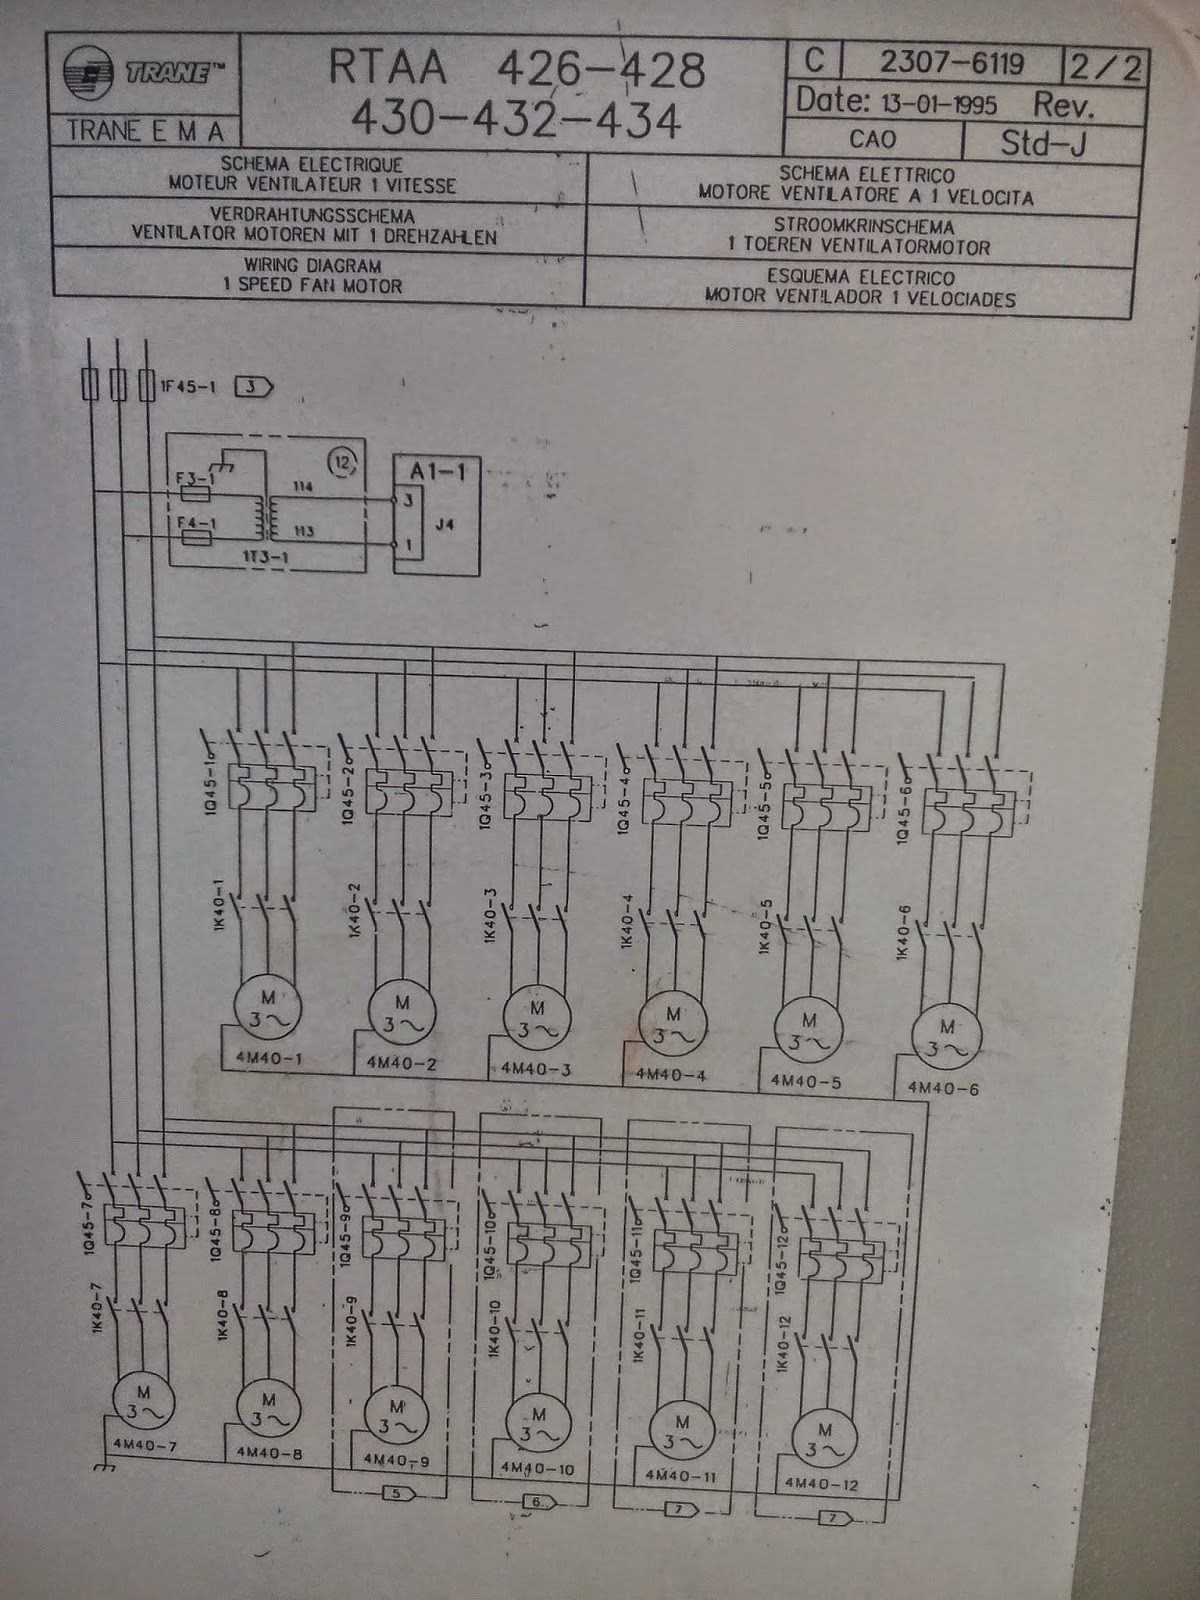 trane wiring diagram autometer pro comp tach hvac chillers heatpump chiller air cooled control